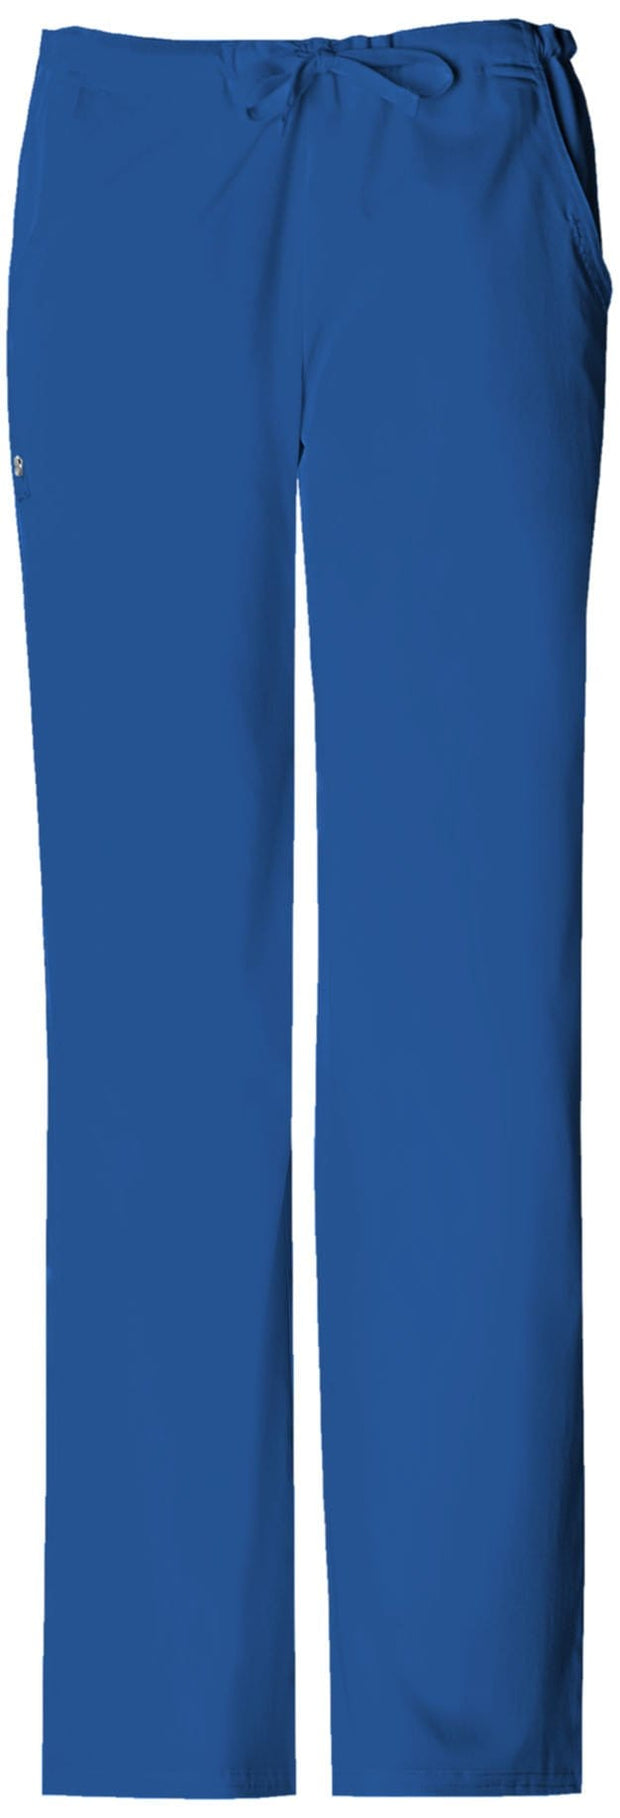 1066 Low Rise Straight Leg Drawstring Pant